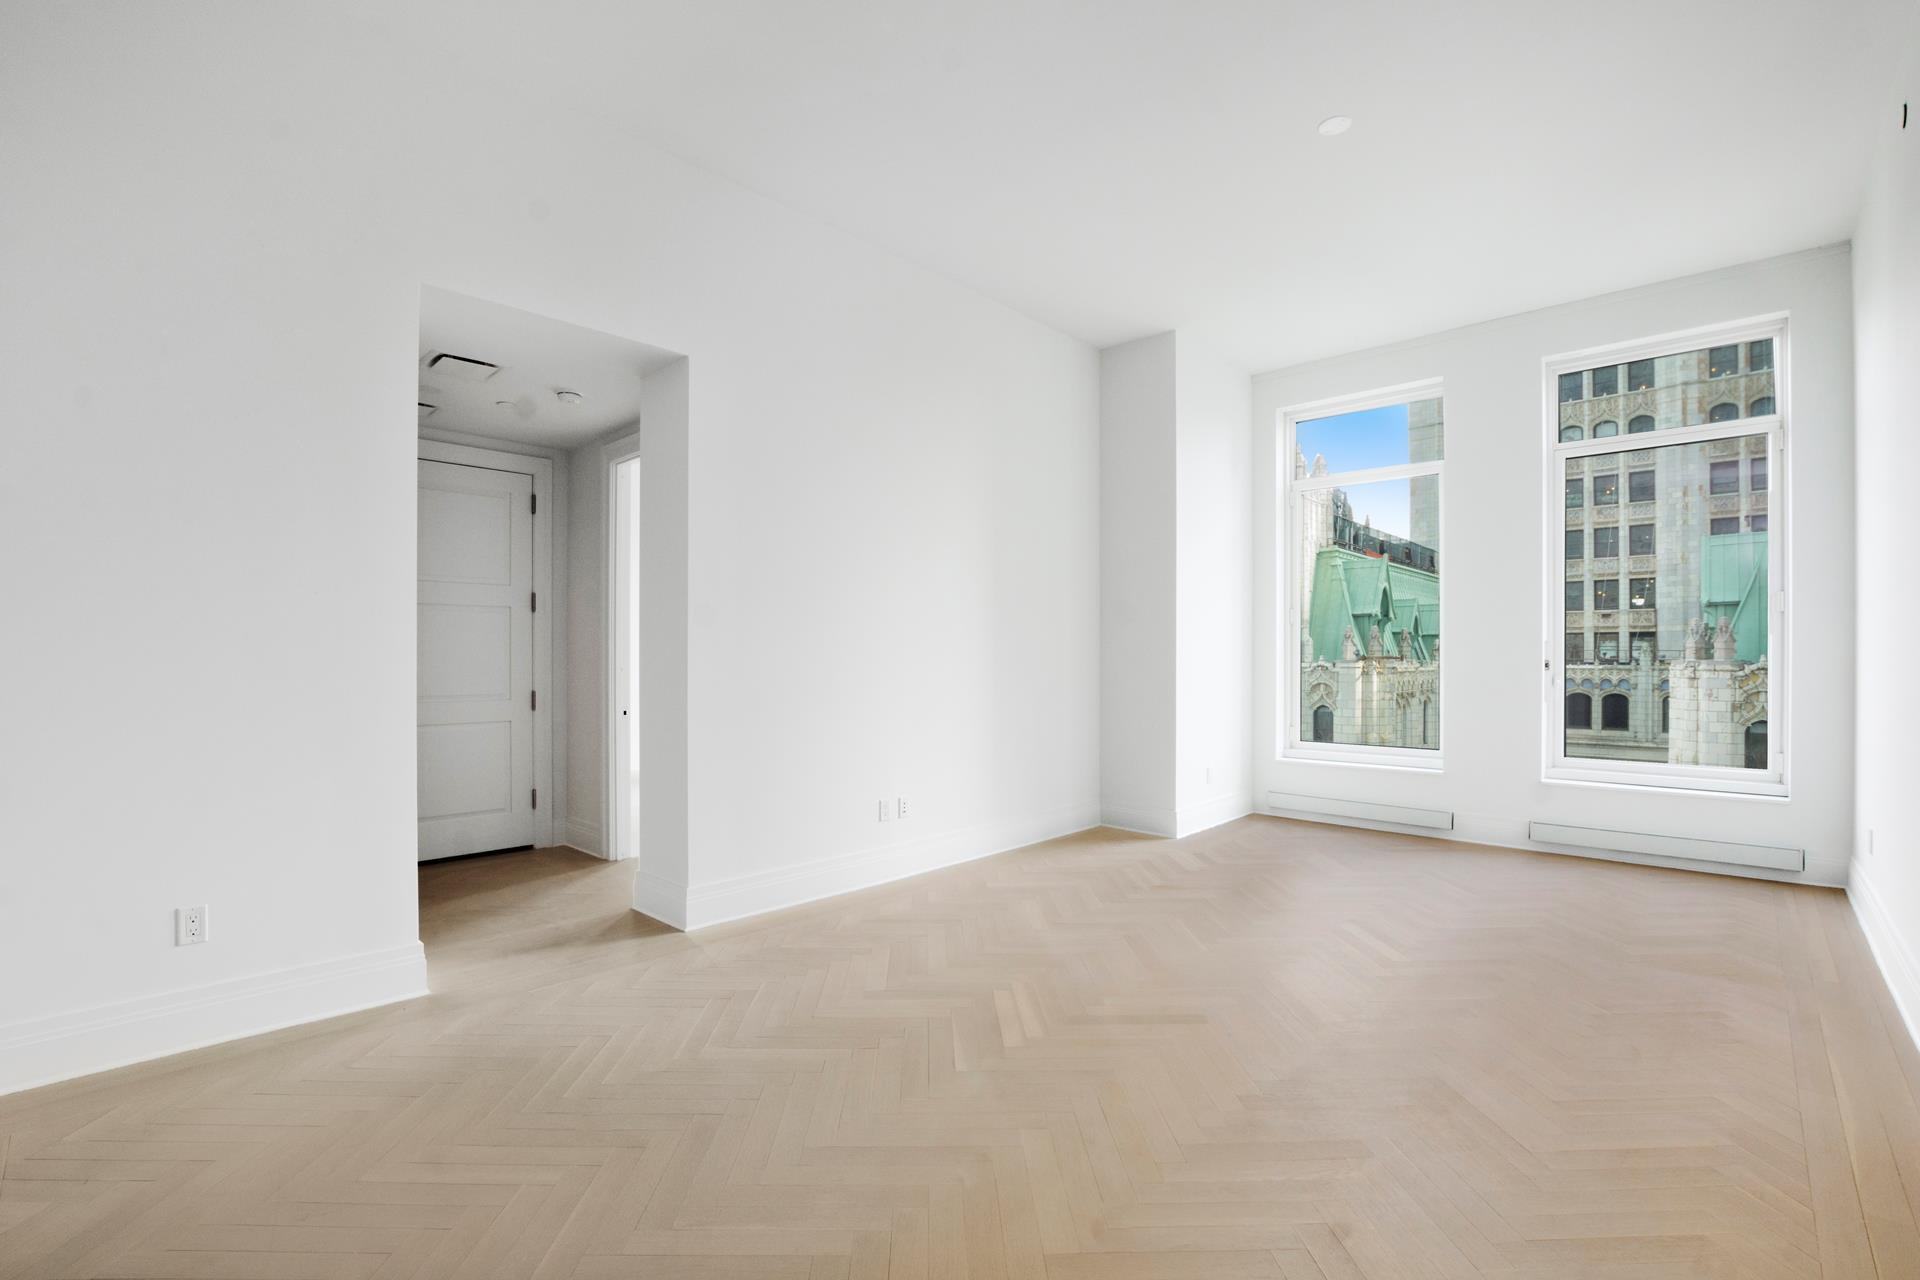 No Fee. Available April 1, 2021. Unfurnished luxury 1 Bed 1.5 Bath condo apartment at 5-star Four Seasons Private Residences at 30 Park Place, Approx. 1,108 SF. Eastern exposure, floor to ceiling windows with tons of natural light. Washer/Dryer in unit. Minimum lease term 12 months, longer terms are welcome. Pets case by case. No smoking, please.This is a condo building, all units require condo board application package, associated fees, and approval.The formal entry foyer leads to the living and dining room with expansive ceilings and solid white oak floors in a natural matte finish and a herringbone pattern. The separate and spacious Gaggenau kitchen is state of art and a chef's dream. The gracious master suite offers ample storage with a large walk-in closet plus second closet, and the en-suite five fixture marble bath features Kallista fixtures and radiant heat flooring.With residences beginning on the 40th floor, the sweeping views are unparalleled. Residents may enjoy access to Four Seasons Hotel amenities including a spa and salon facilities, 75' swimming pool, attended parking garage, restaurant, bar and lounge, ballroom facilities, and meeting rooms, as well as a comprehensive suite of a la carte services. The 38th floor is devoted to private residential amenities including a fitness center and yoga studio, private dining room, conservatory and lounge with access to loggias, Roto-designed kid's playroom, and screening room.Conveniently nestled at the convergence of Tribeca and the City Hall. Close to Brookfield Place and Eataly shopping and dining.Easy transportation access to anywhere with 11 subway lines (1, 2, 3, 4, 5, 6, A, C, E, R, W).Brokers CYOF.